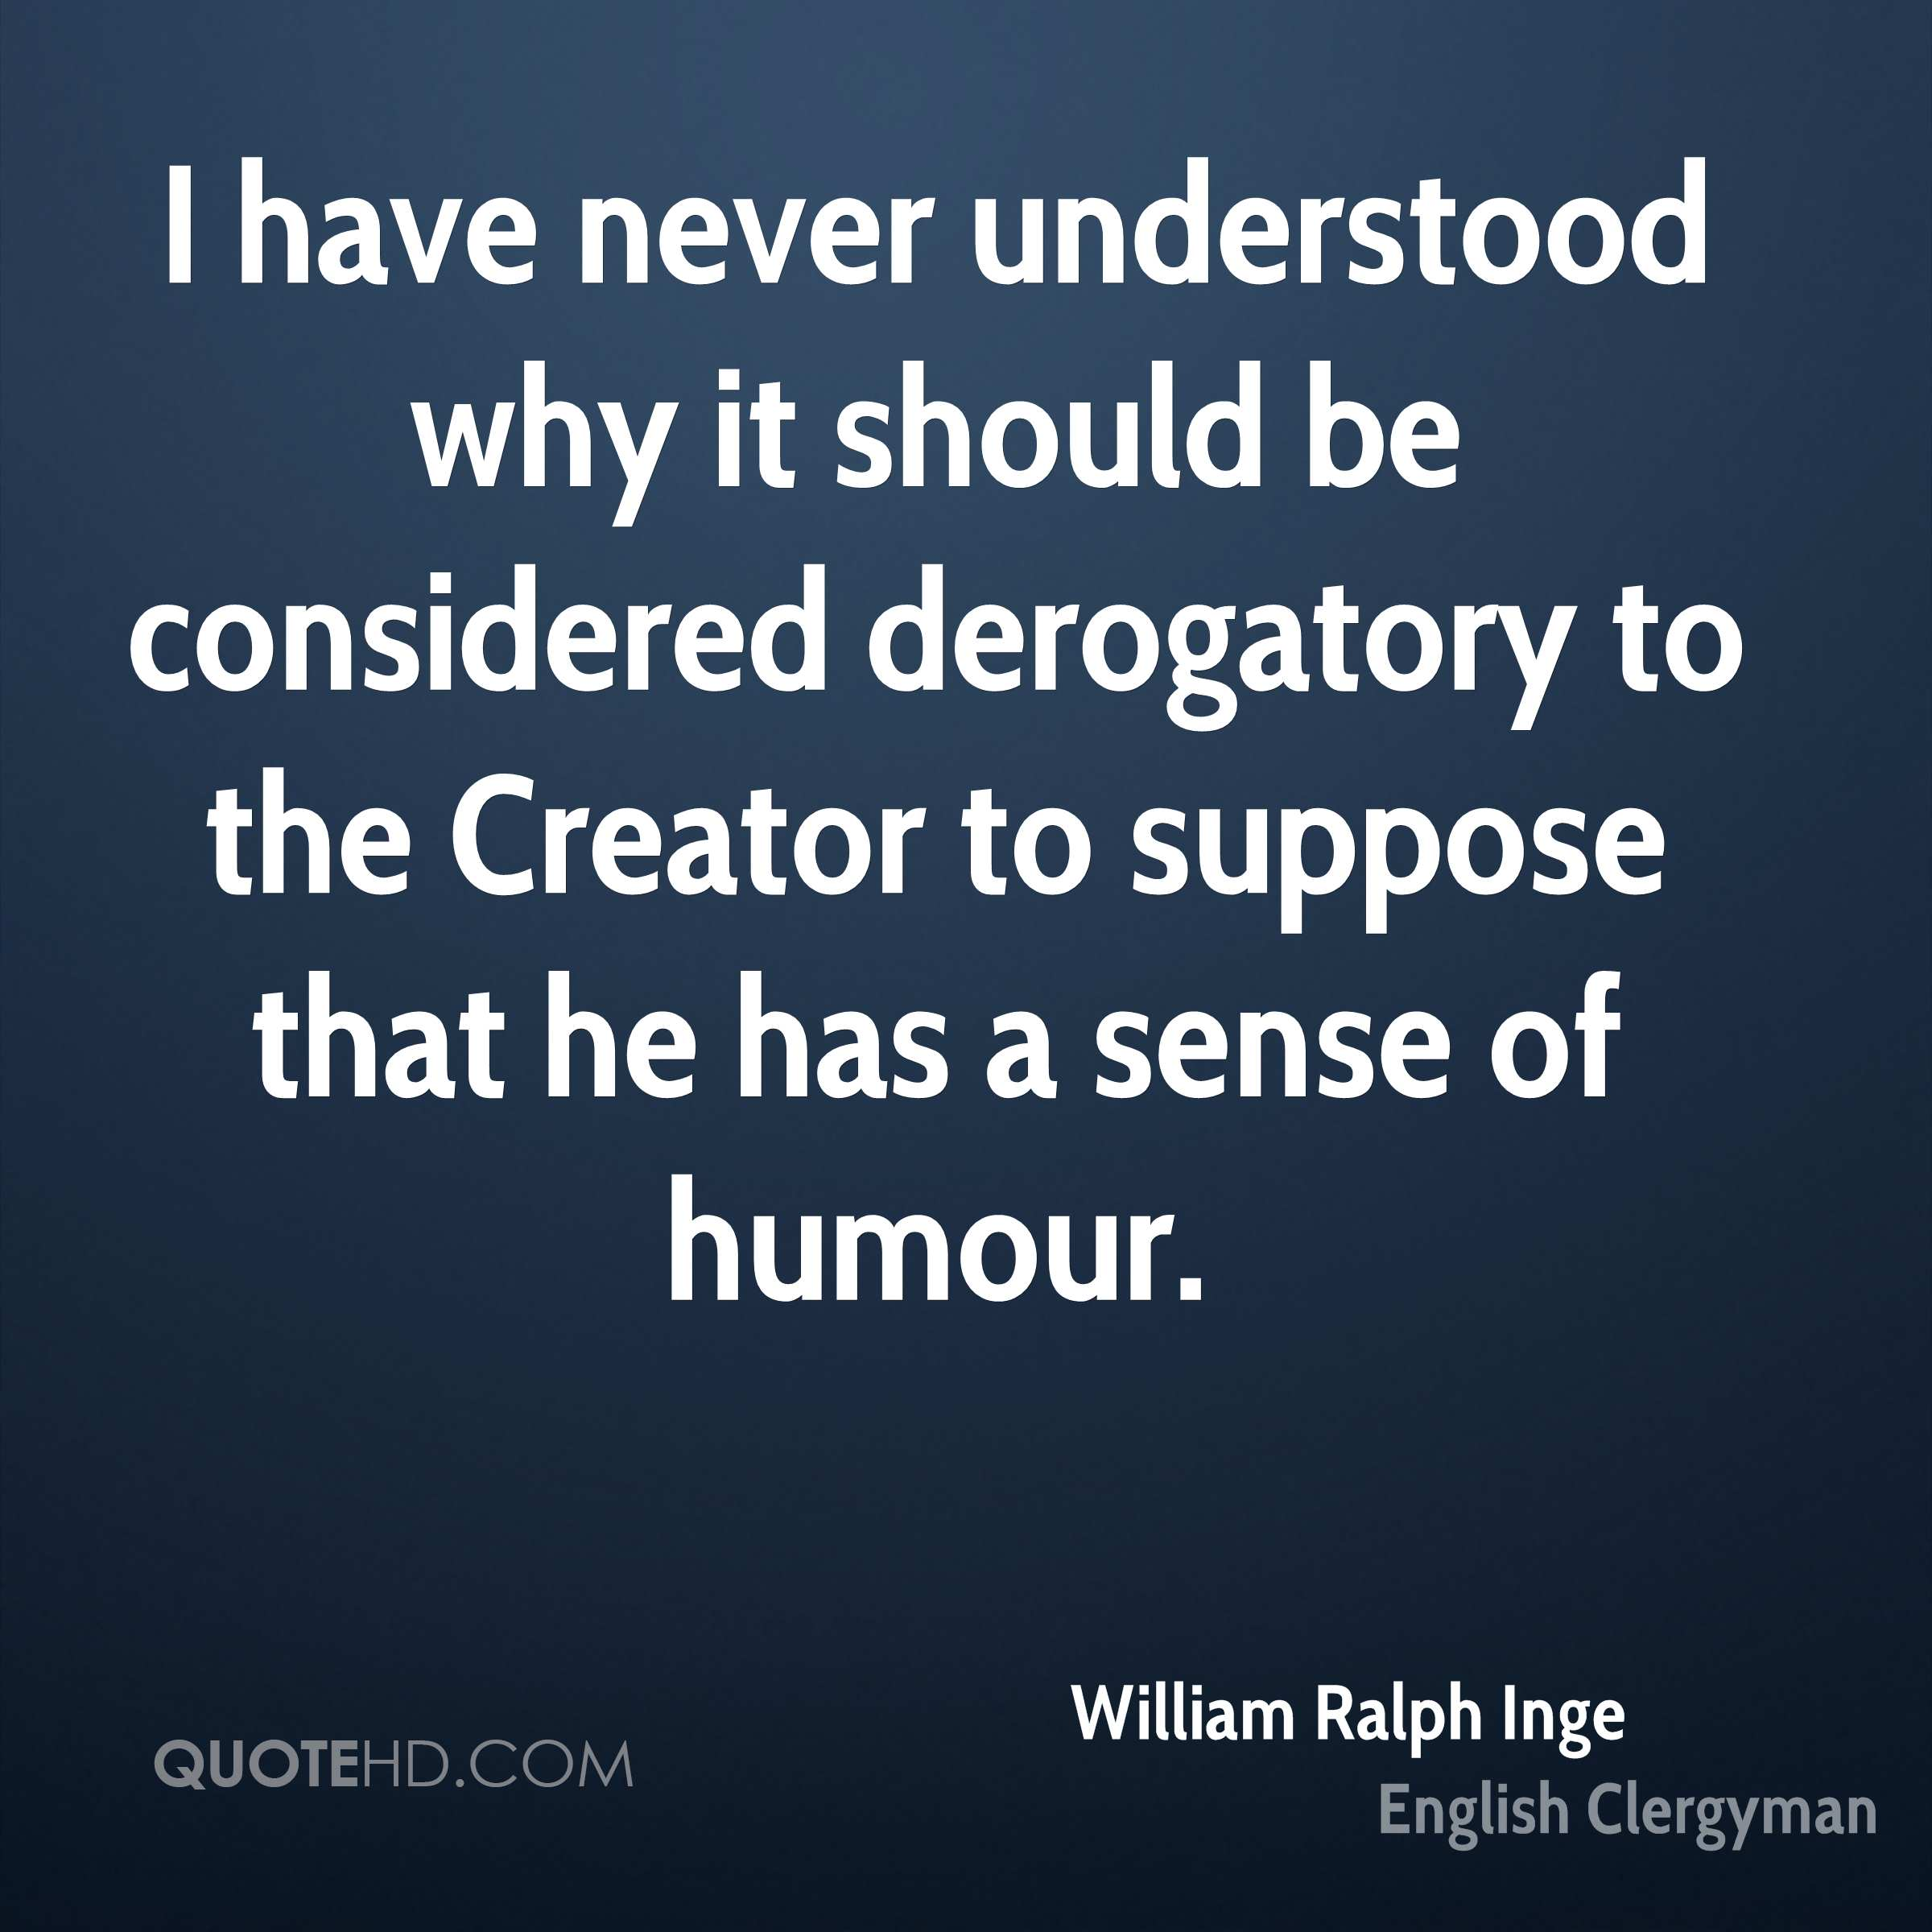 I have never understood why it should be considered derogatory to the Creator to suppose that he has a sense of humour.